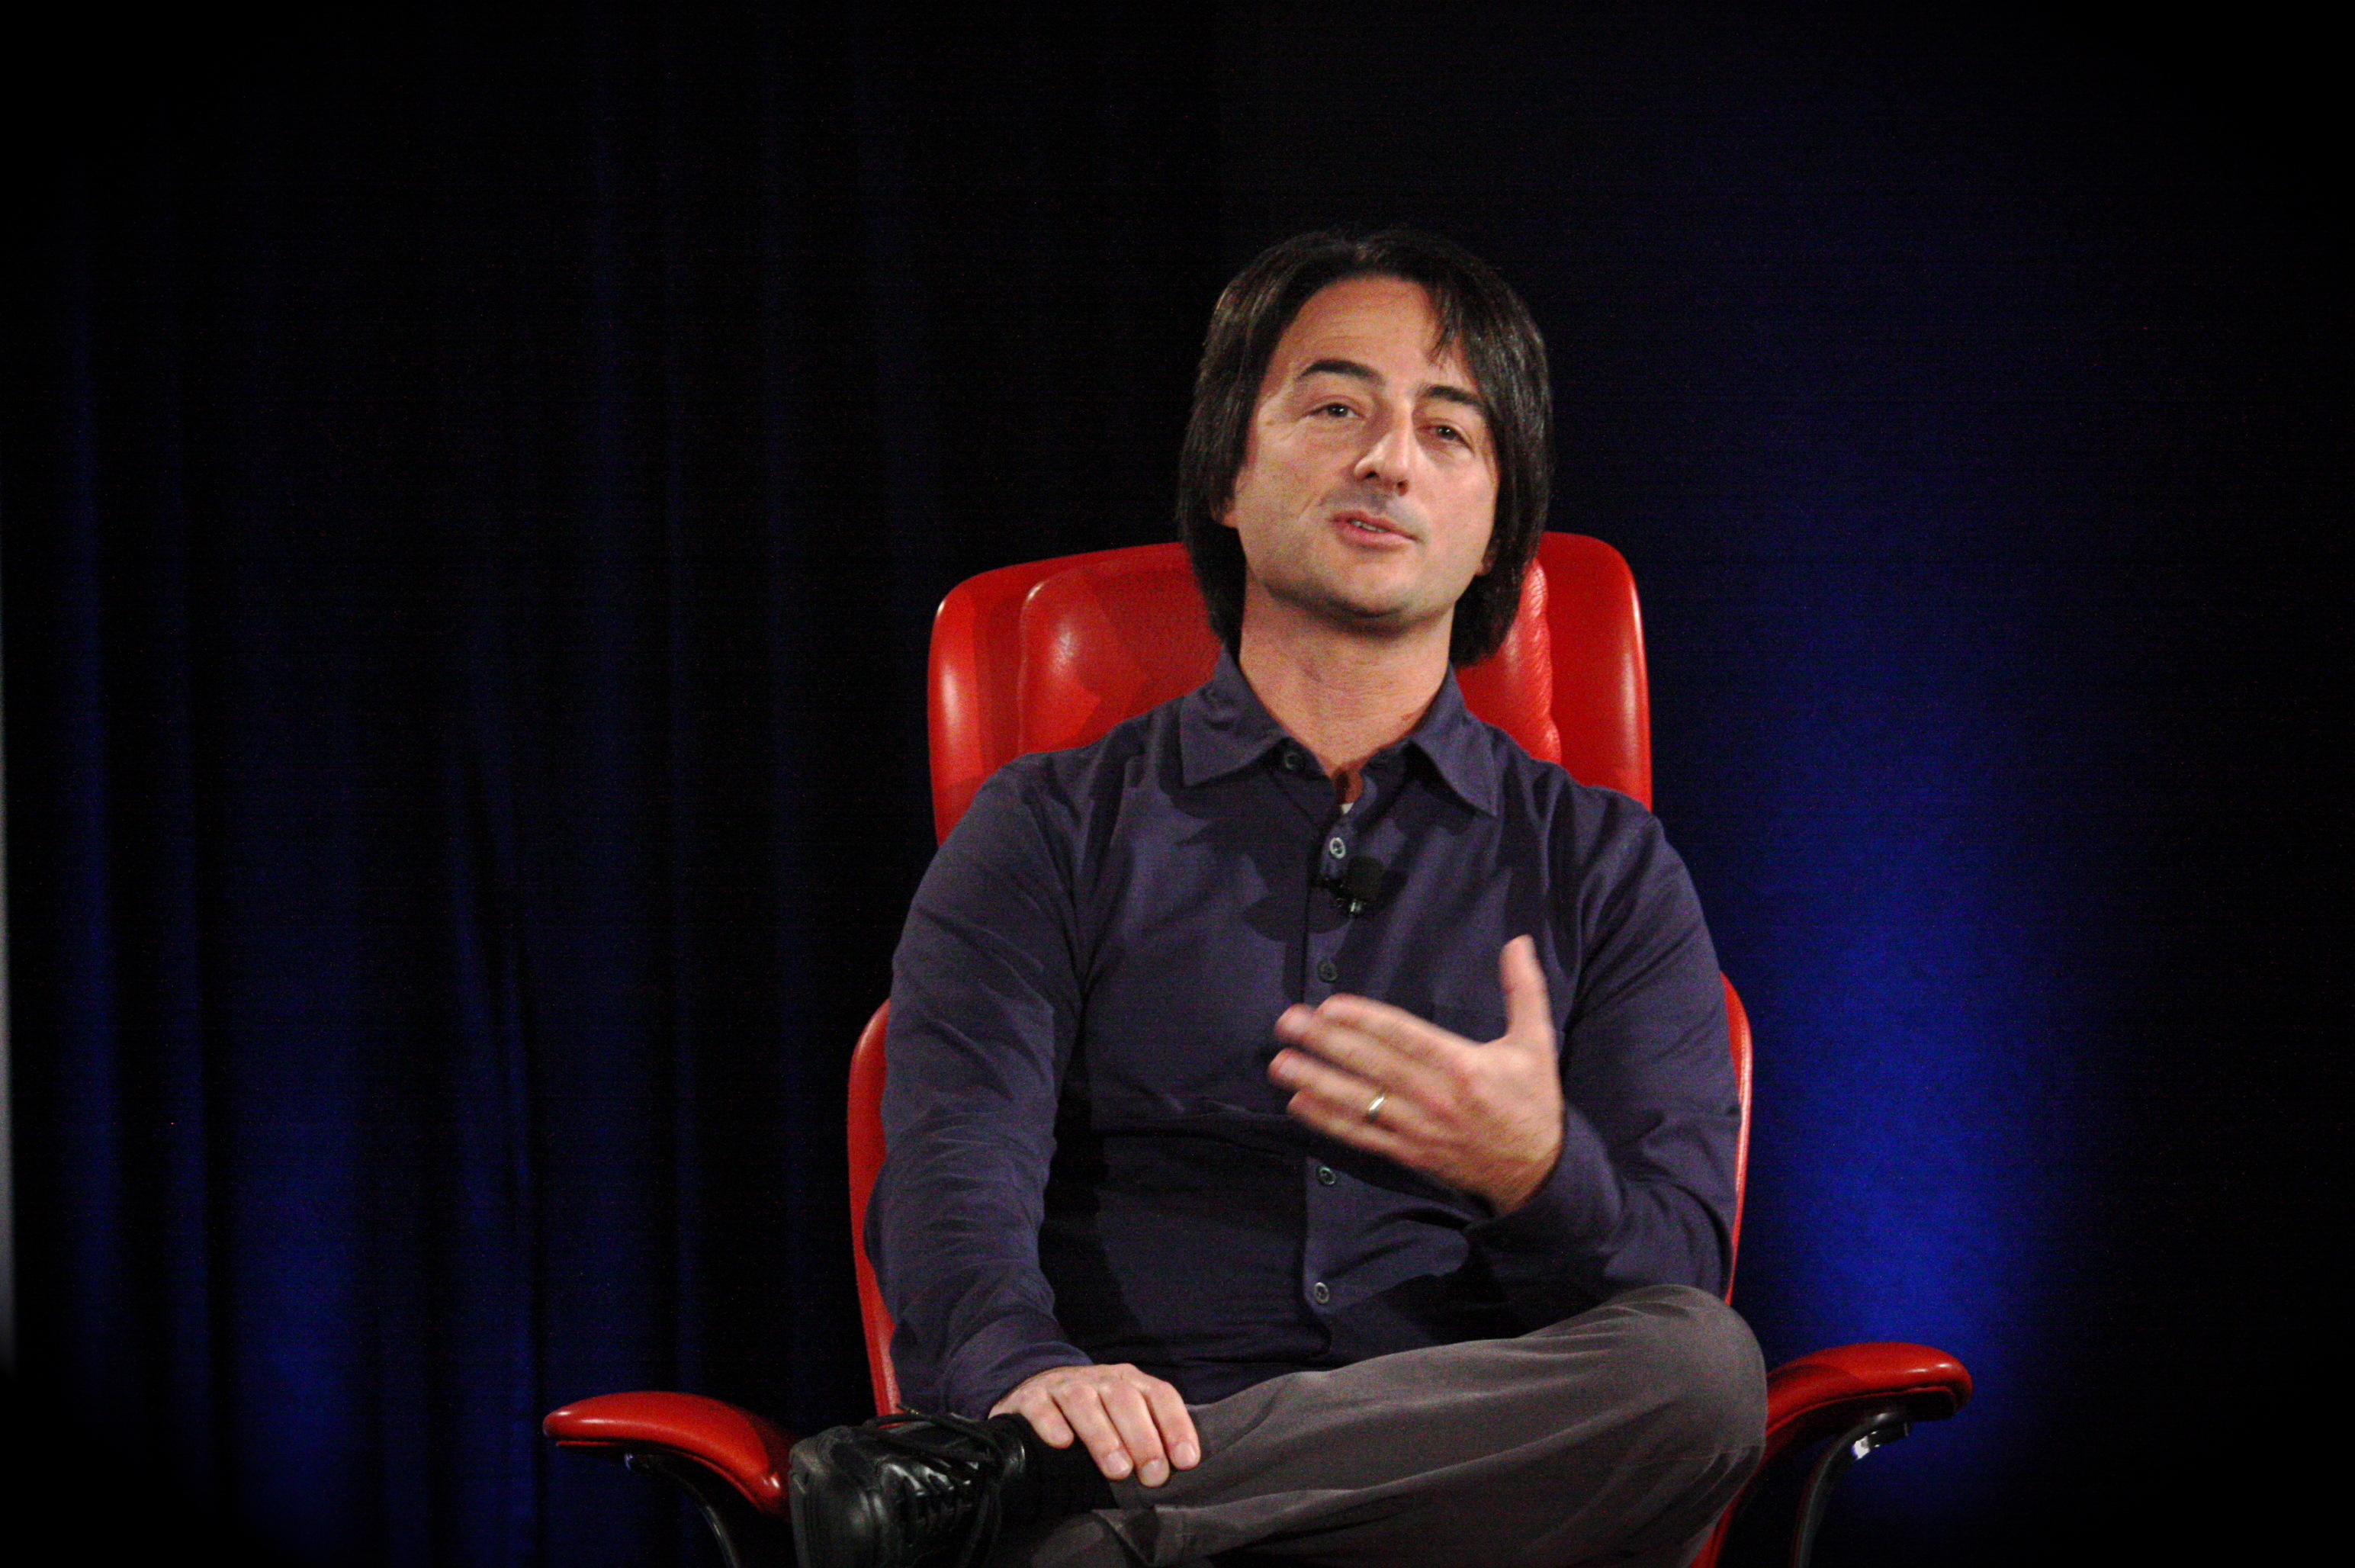 Microsoft's Joe Belfiore discusses Windows Phone 7 development priorities at the D: Dive Into Mobile conference.